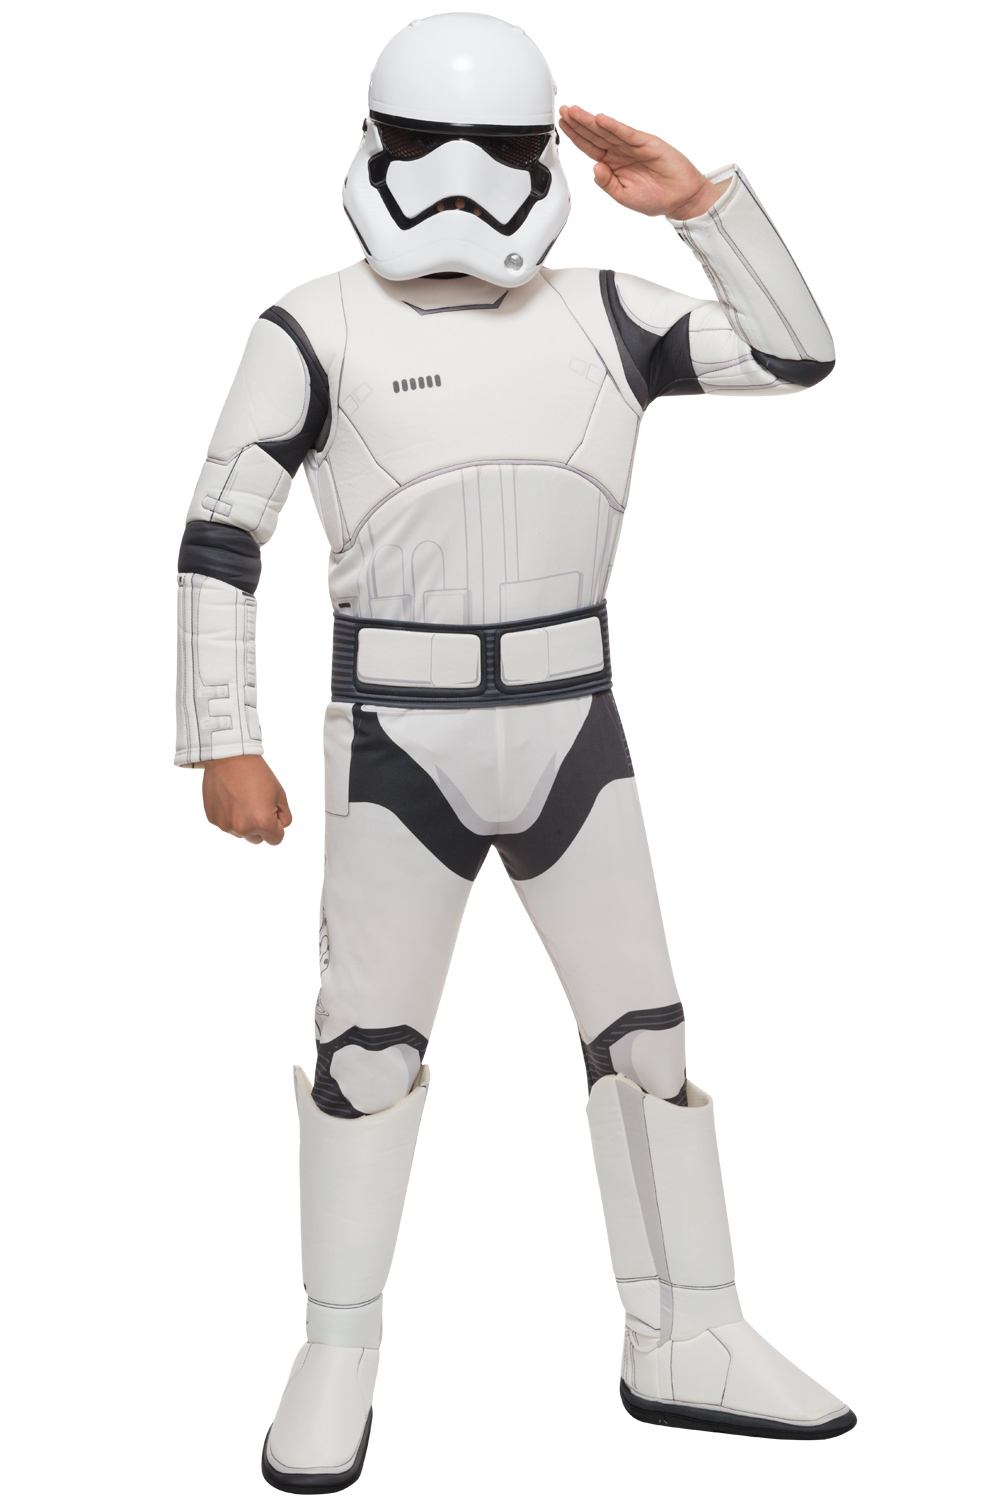 Click Here to buy Deluxe Star Wars Stormtrooper Kids Costume from Pure Costumes